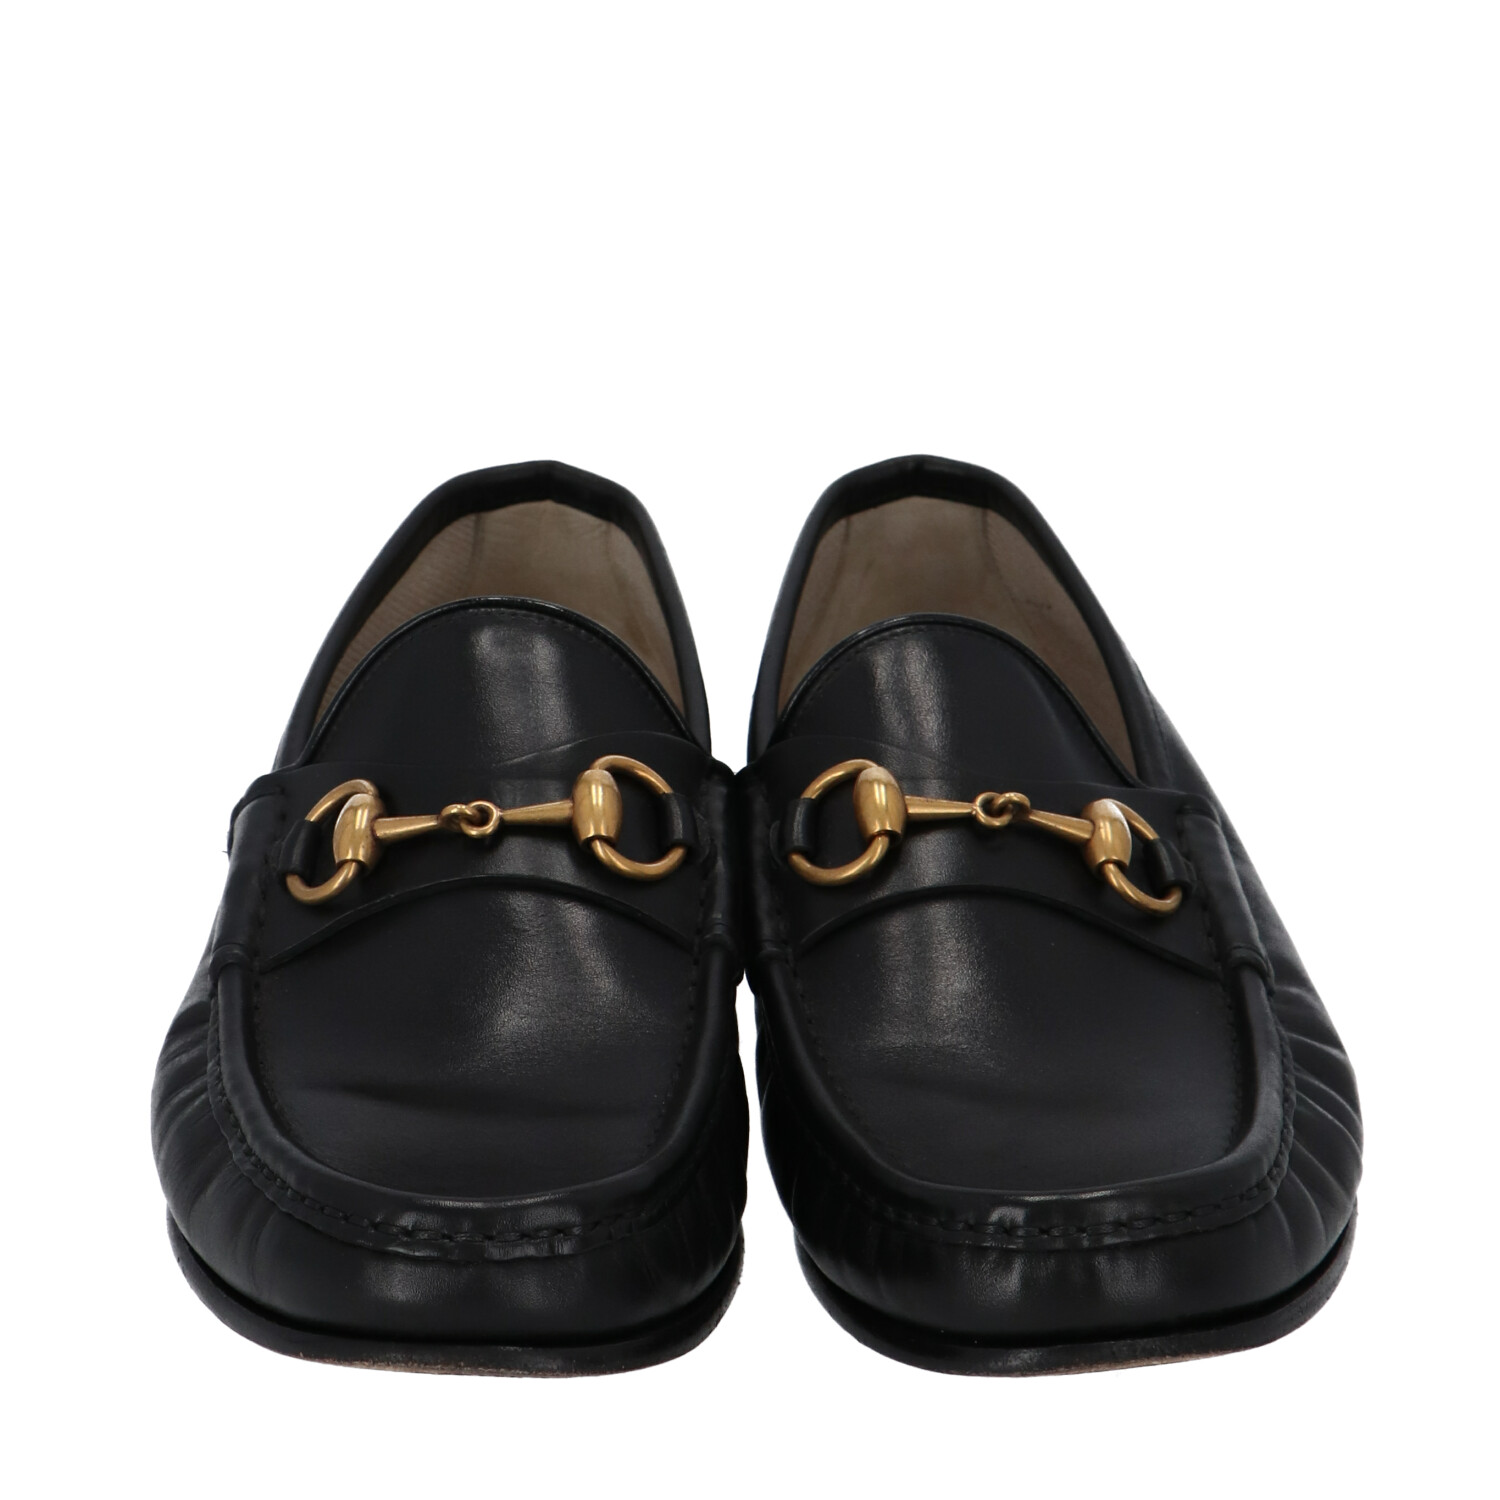 Gucci Black Leather Loafers